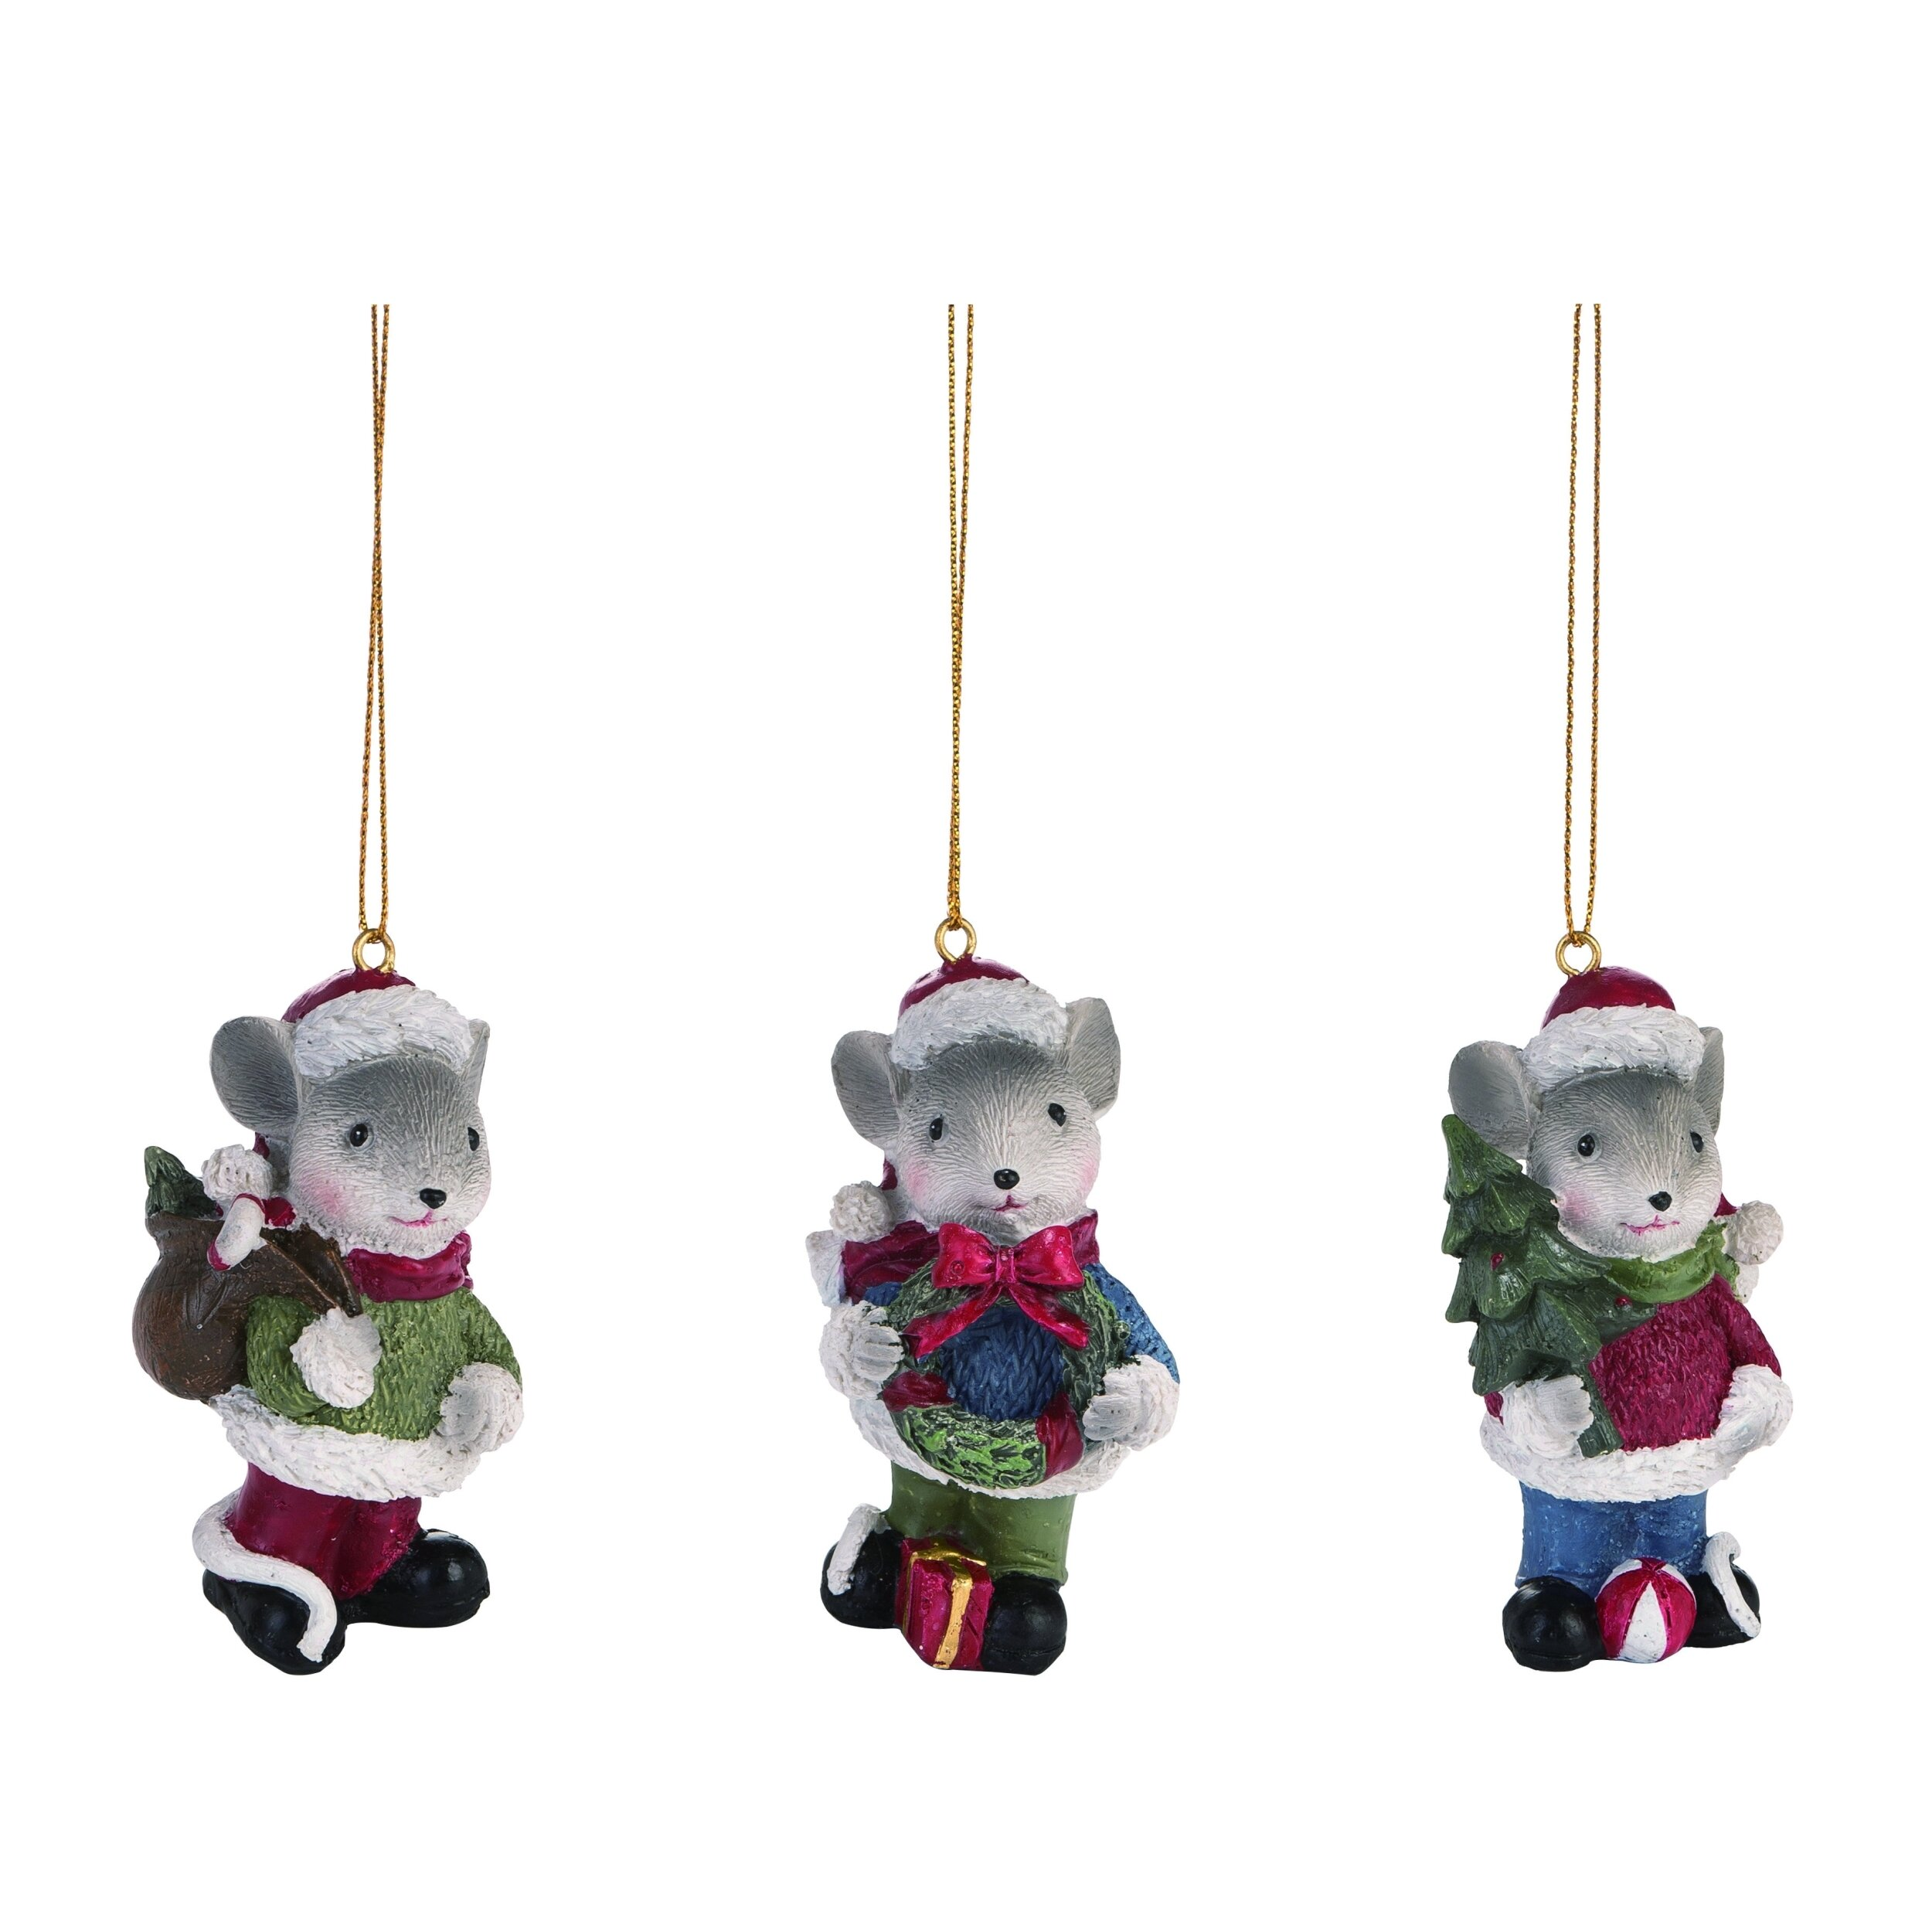 The Holiday Aisle 3 Piece Mouse Hanging Figurine Ornament Set Wayfair